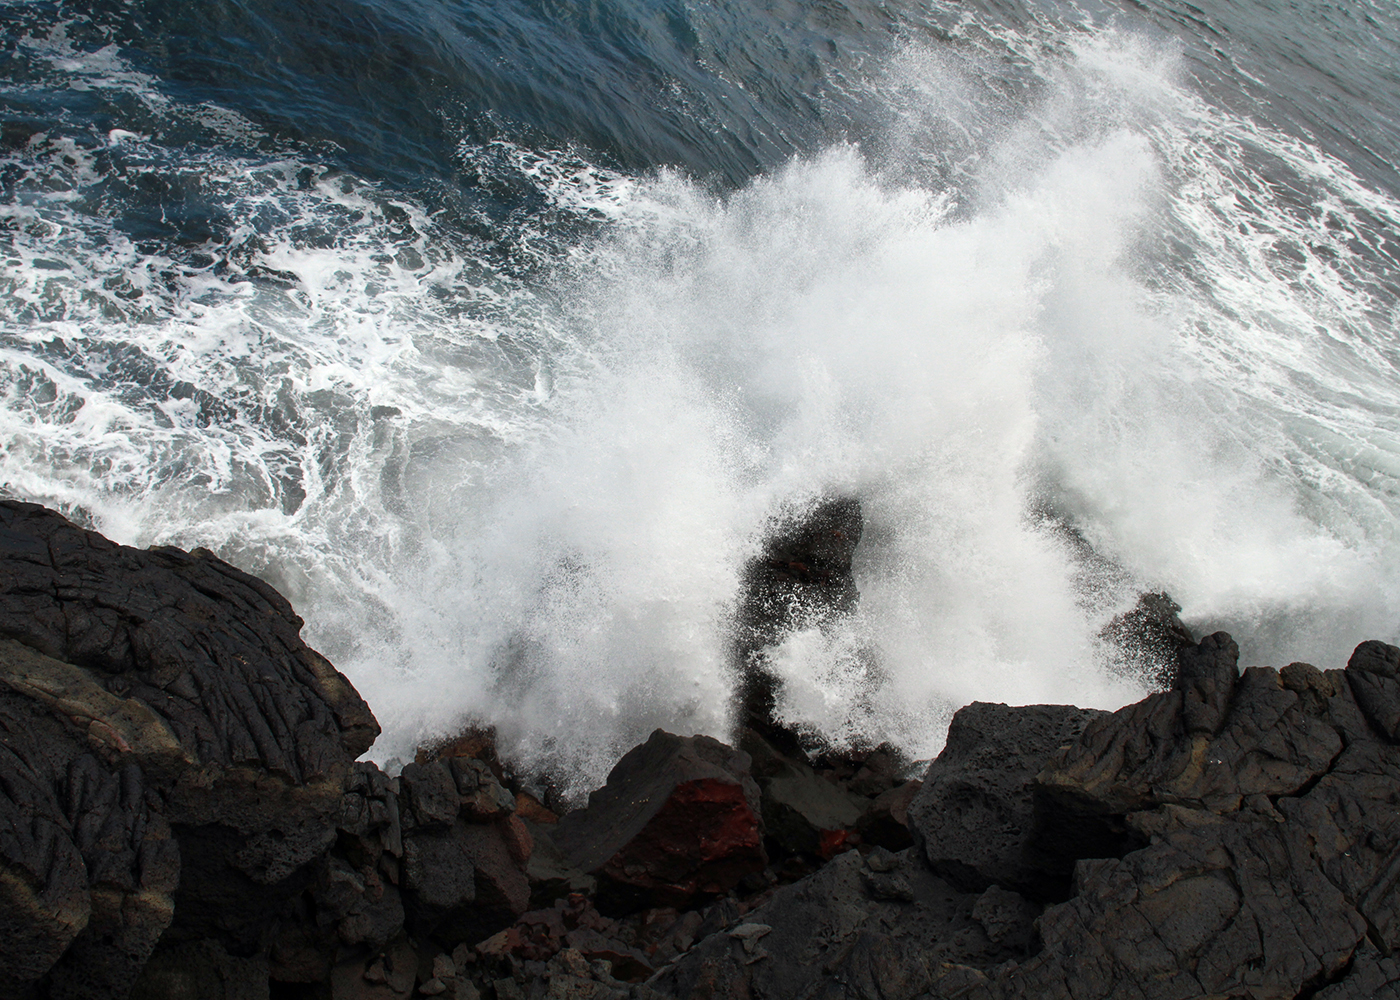 Waves and Lava Cliffs